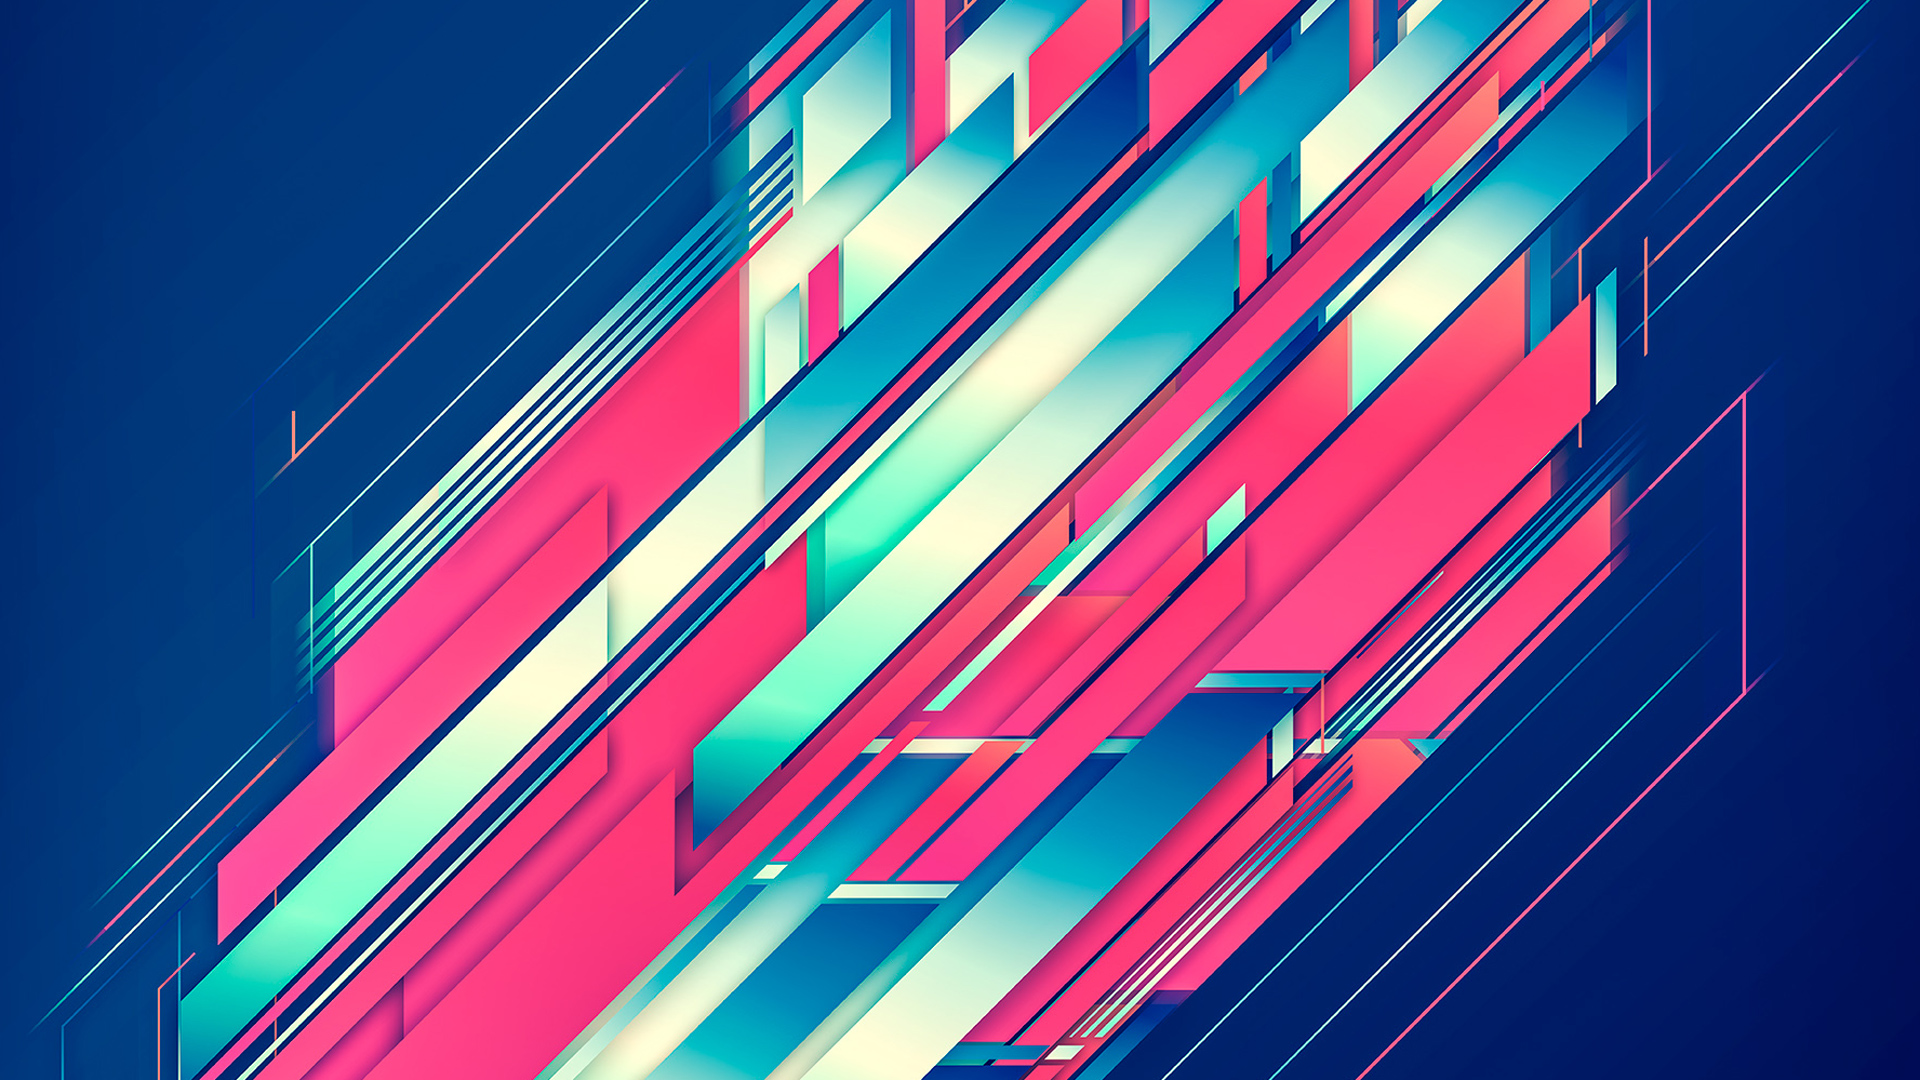 3d Graphic Wallpaper 1280x1024 Abstract Graphic Design Hd Abstract 4k Wallpapers